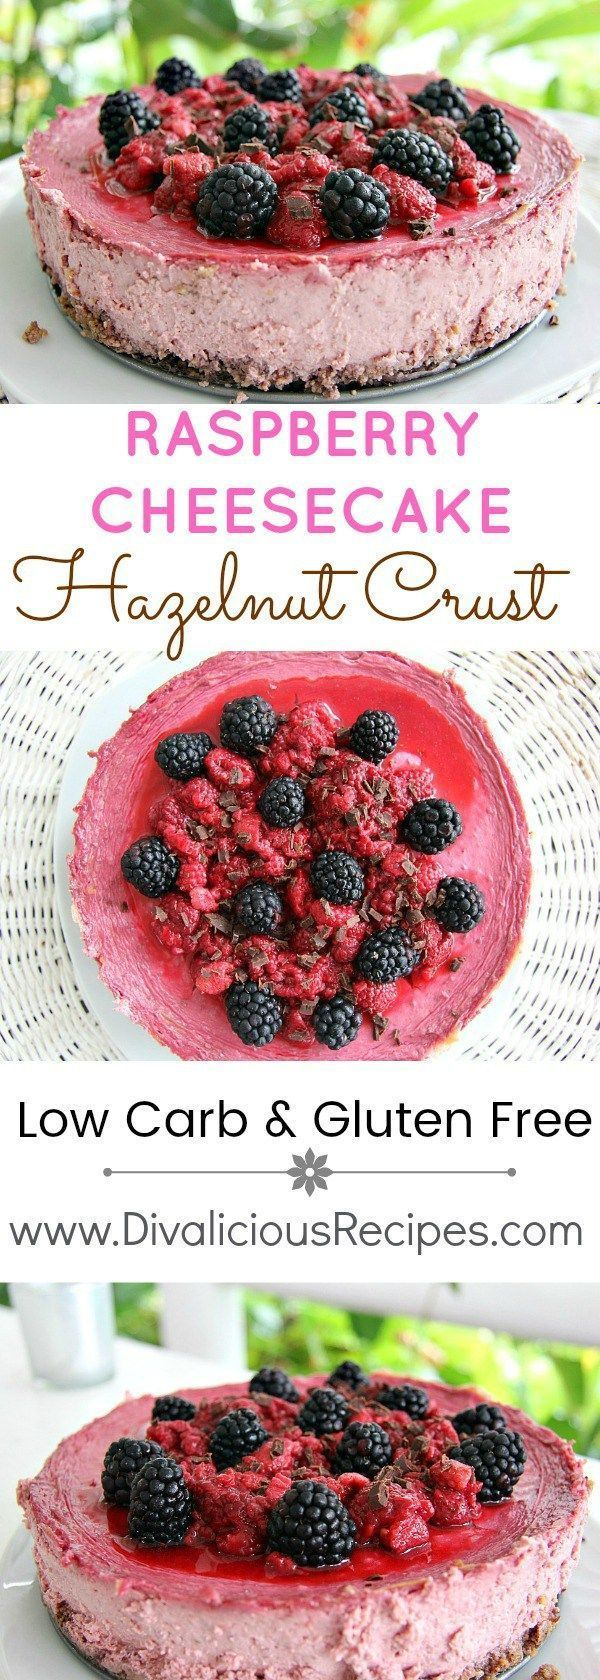 Raspberry Cheesecake hazelnut crust - low carb and gluten free. Recipe - http://divaliciousrecipes.com/2016/07/08/raspberry-cheesecake-hazelnut-crust/